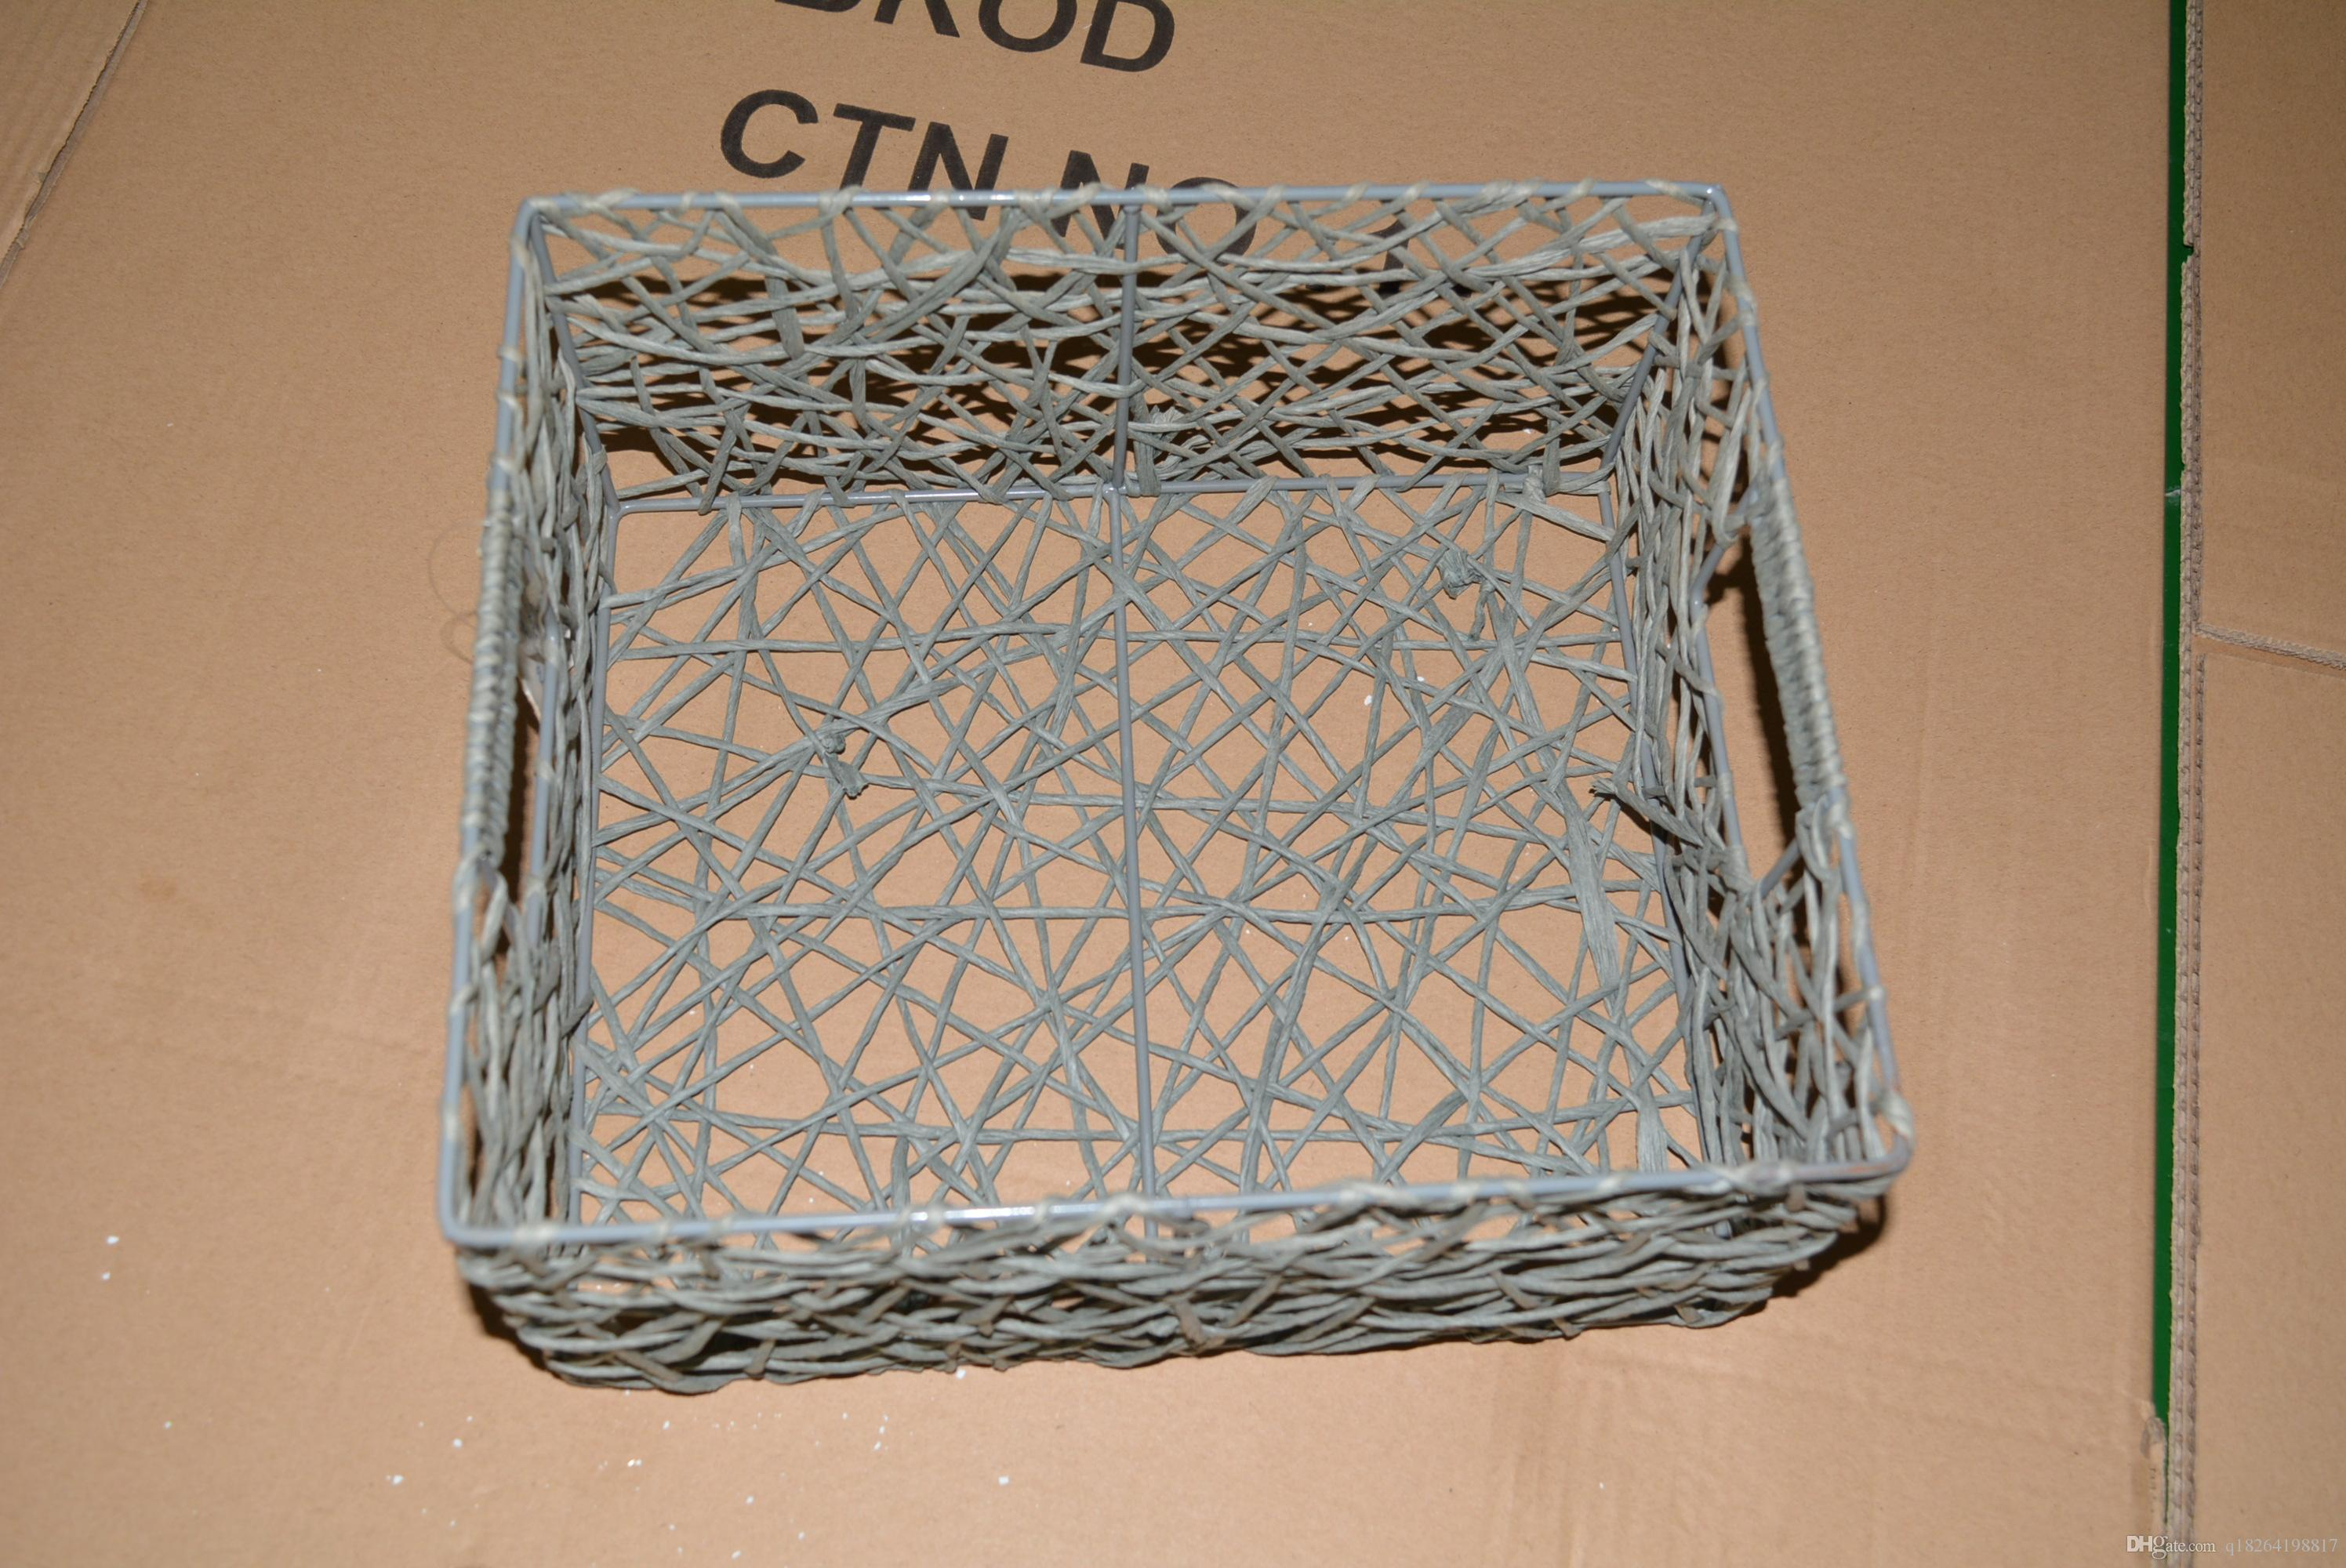 woven seagrass baskets with handles decorative storage boxes.htm 2019 gray storage baskets storage box put sundries made by  2019 gray storage baskets storage box